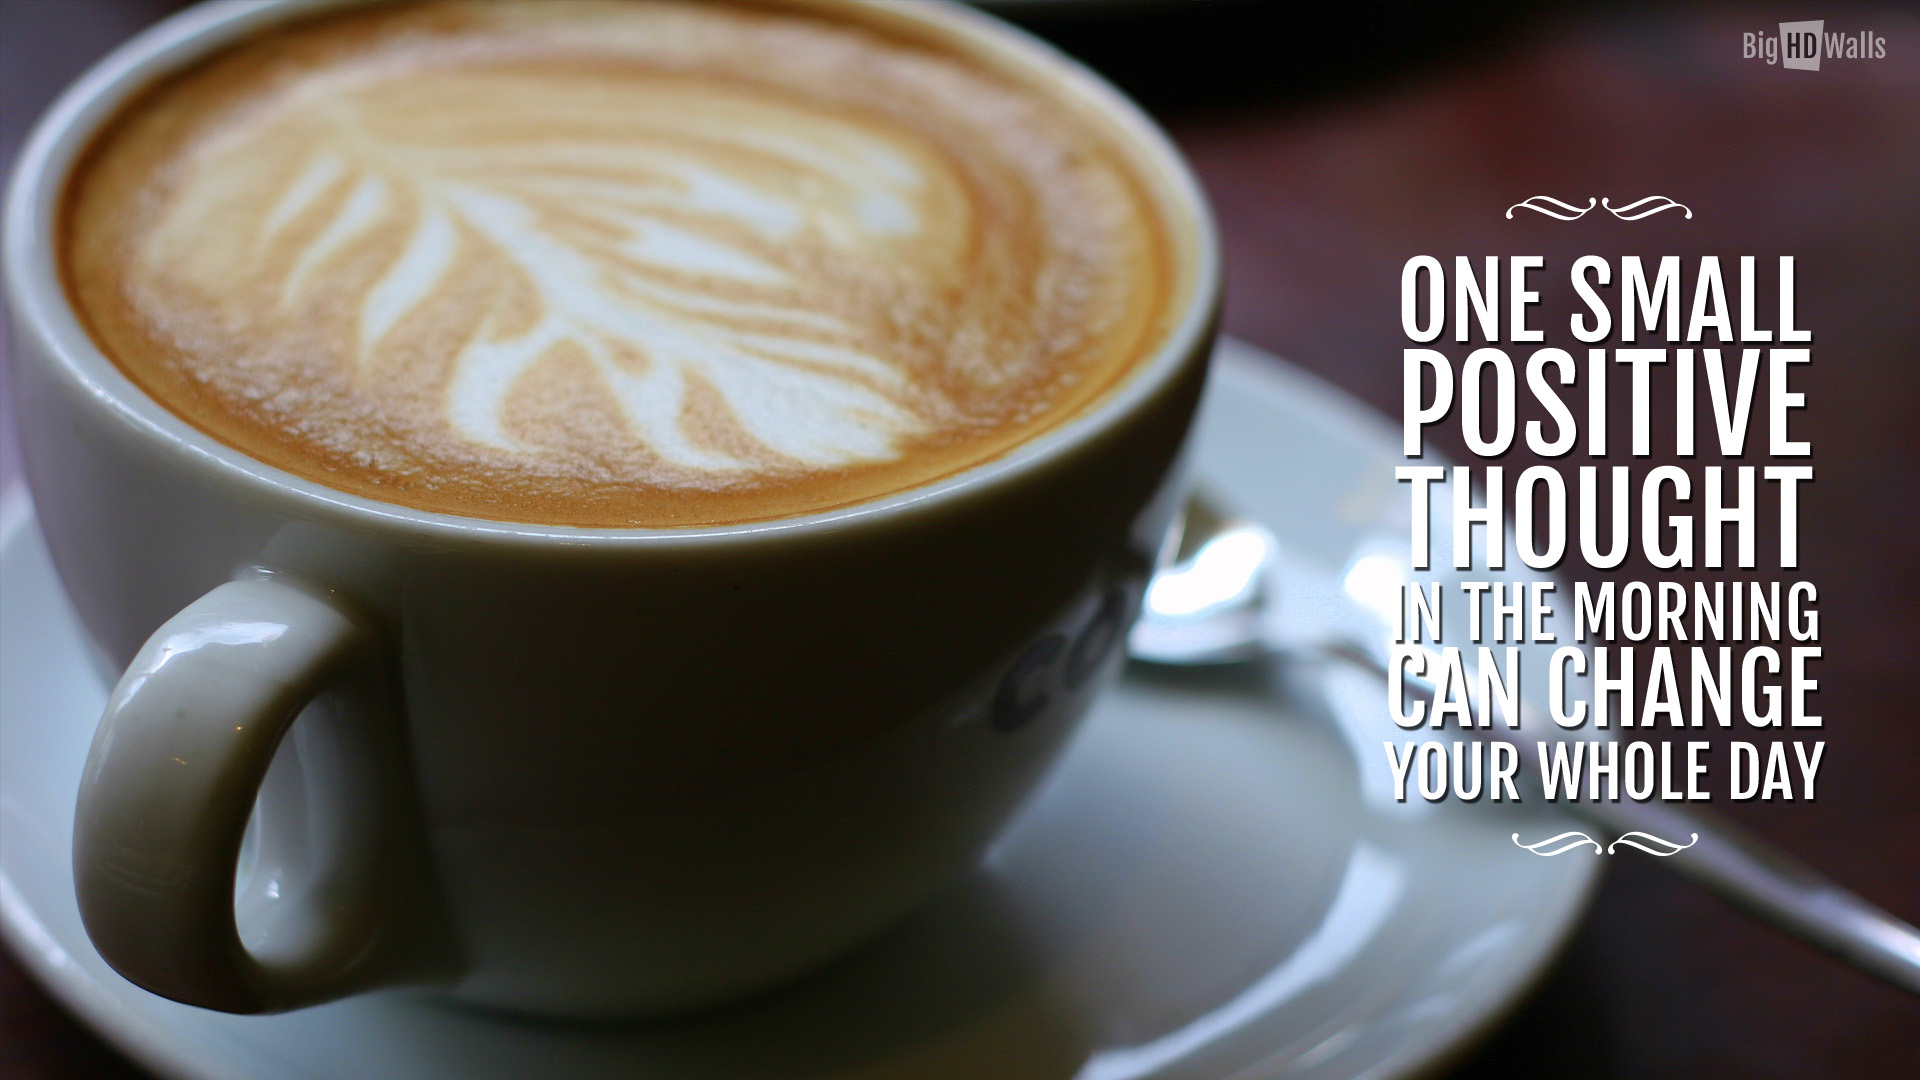 Morning Coffee With An Inspirational Quote Hd Wallpaper Life Is